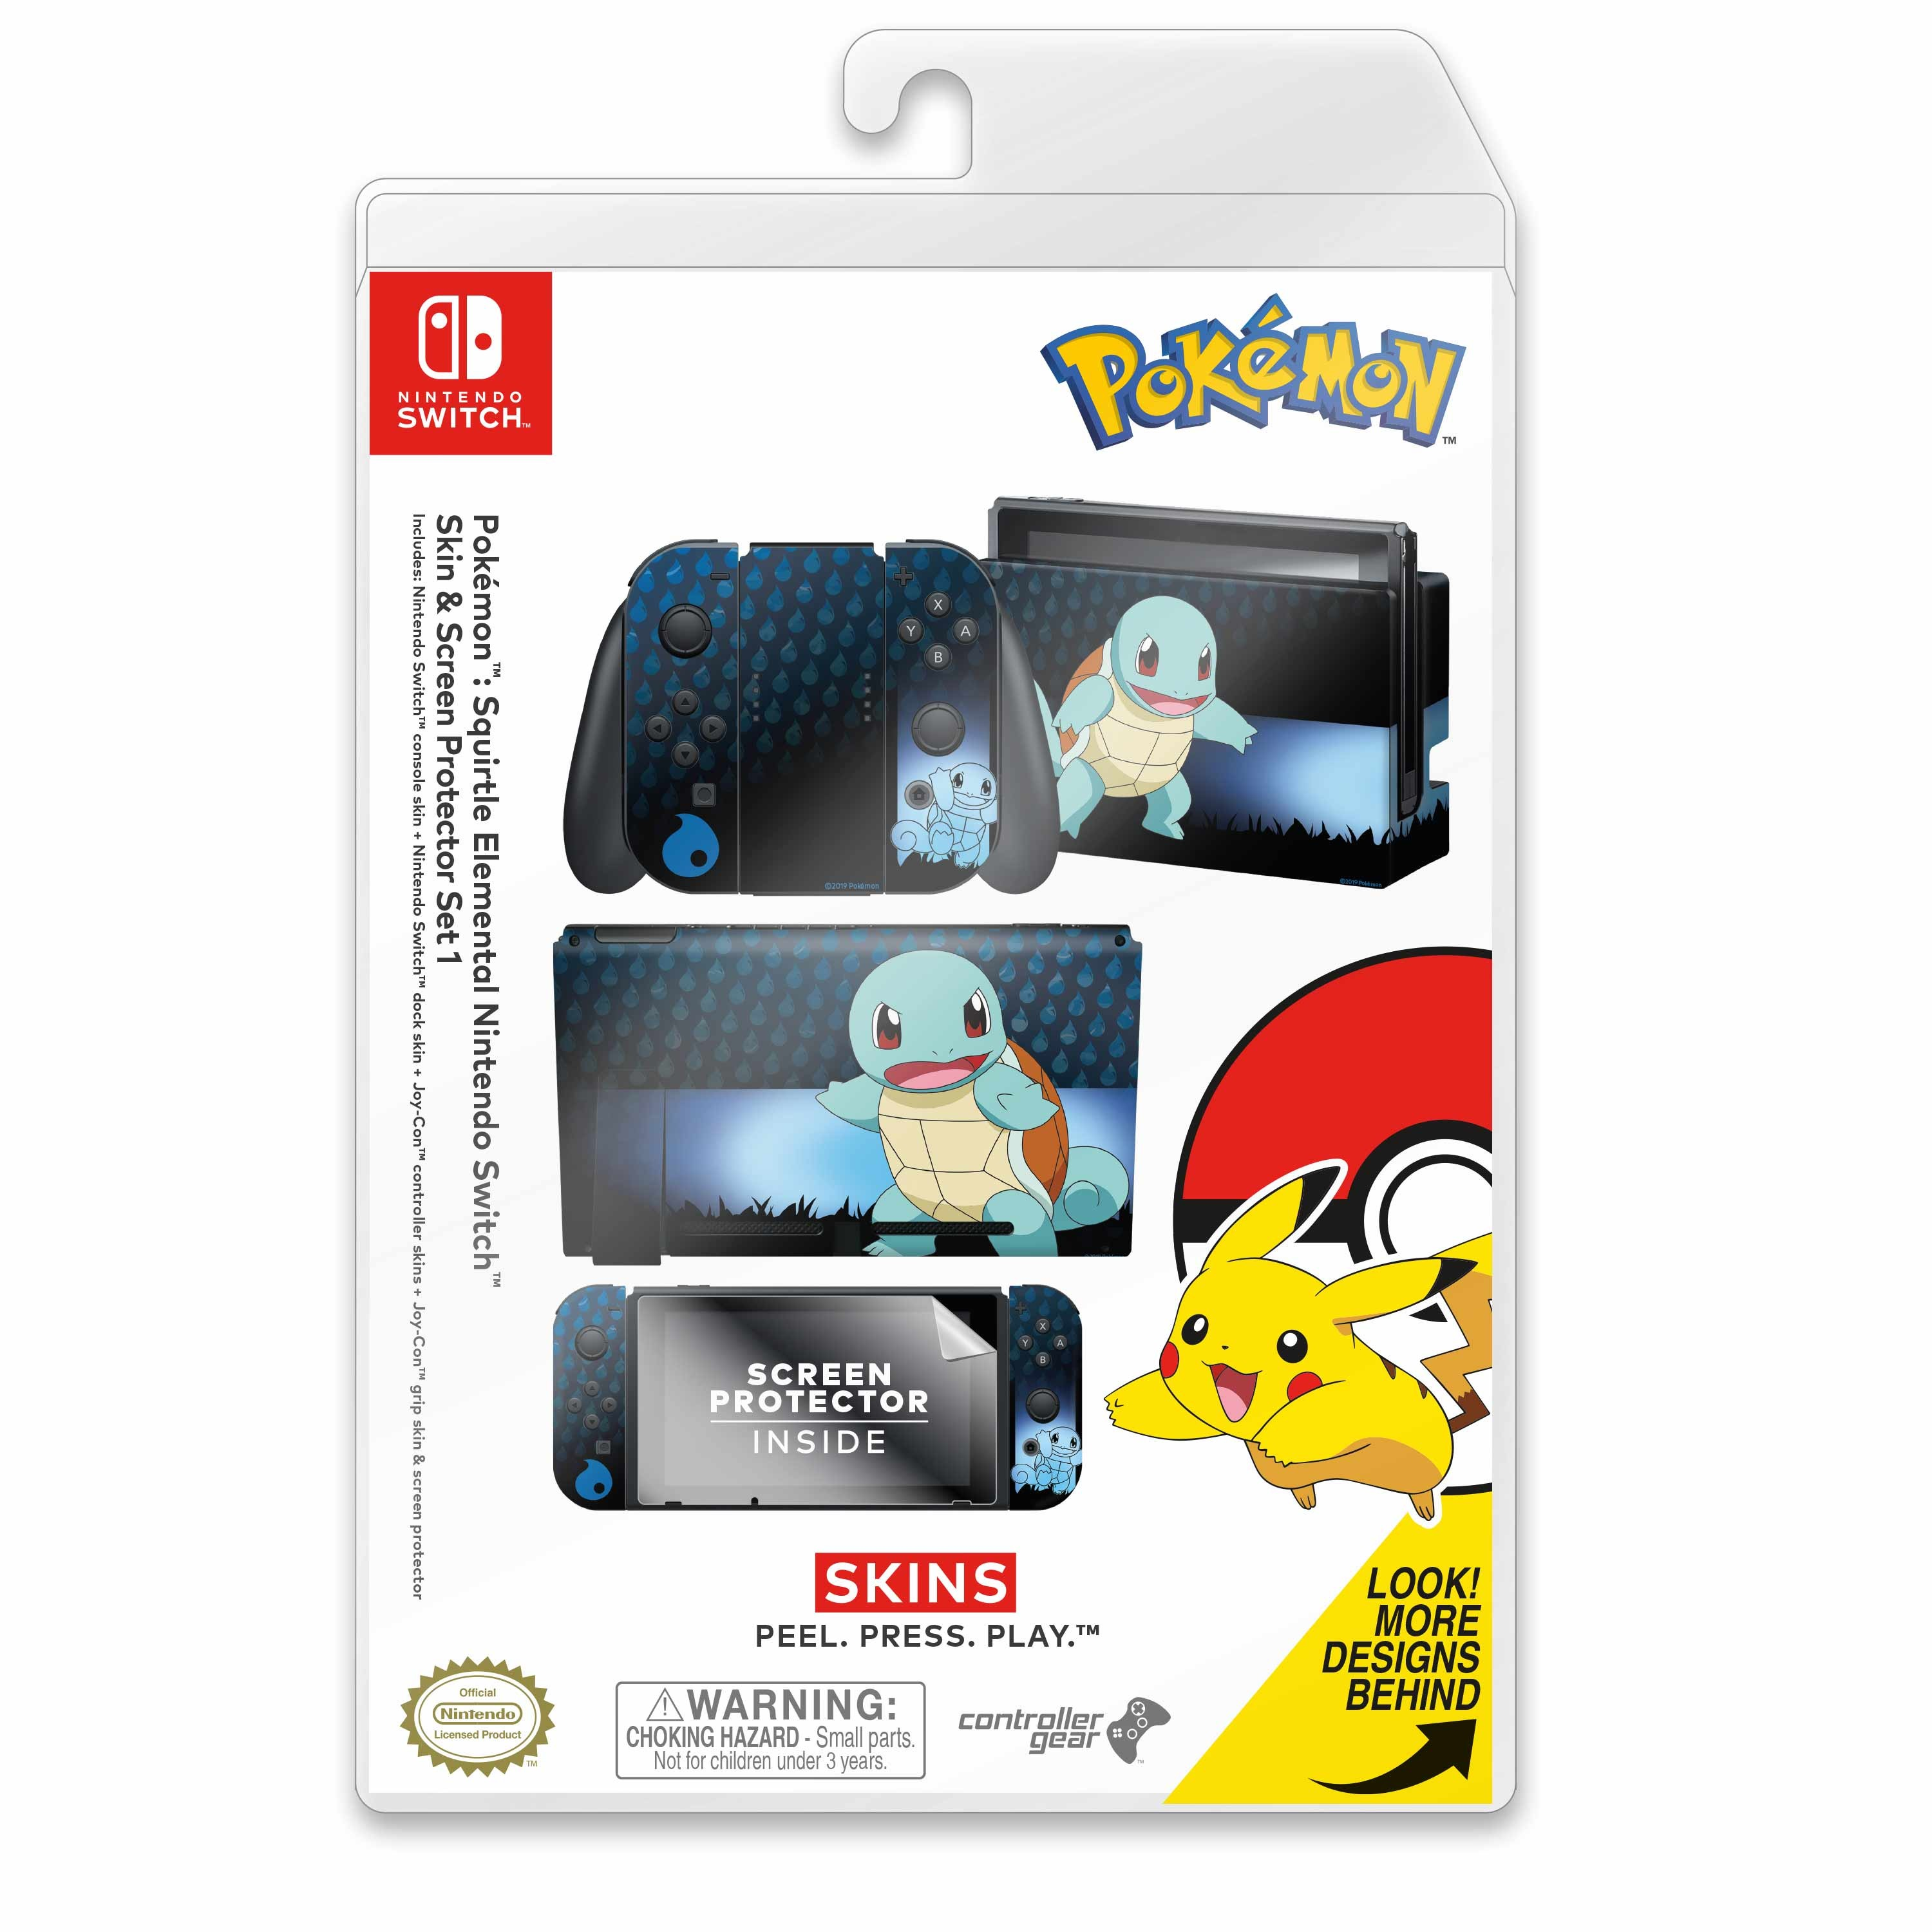 Nintendo Switch Skin & Screen Protector Set with a Pokemon Squirtle Elemental Design, Image 1